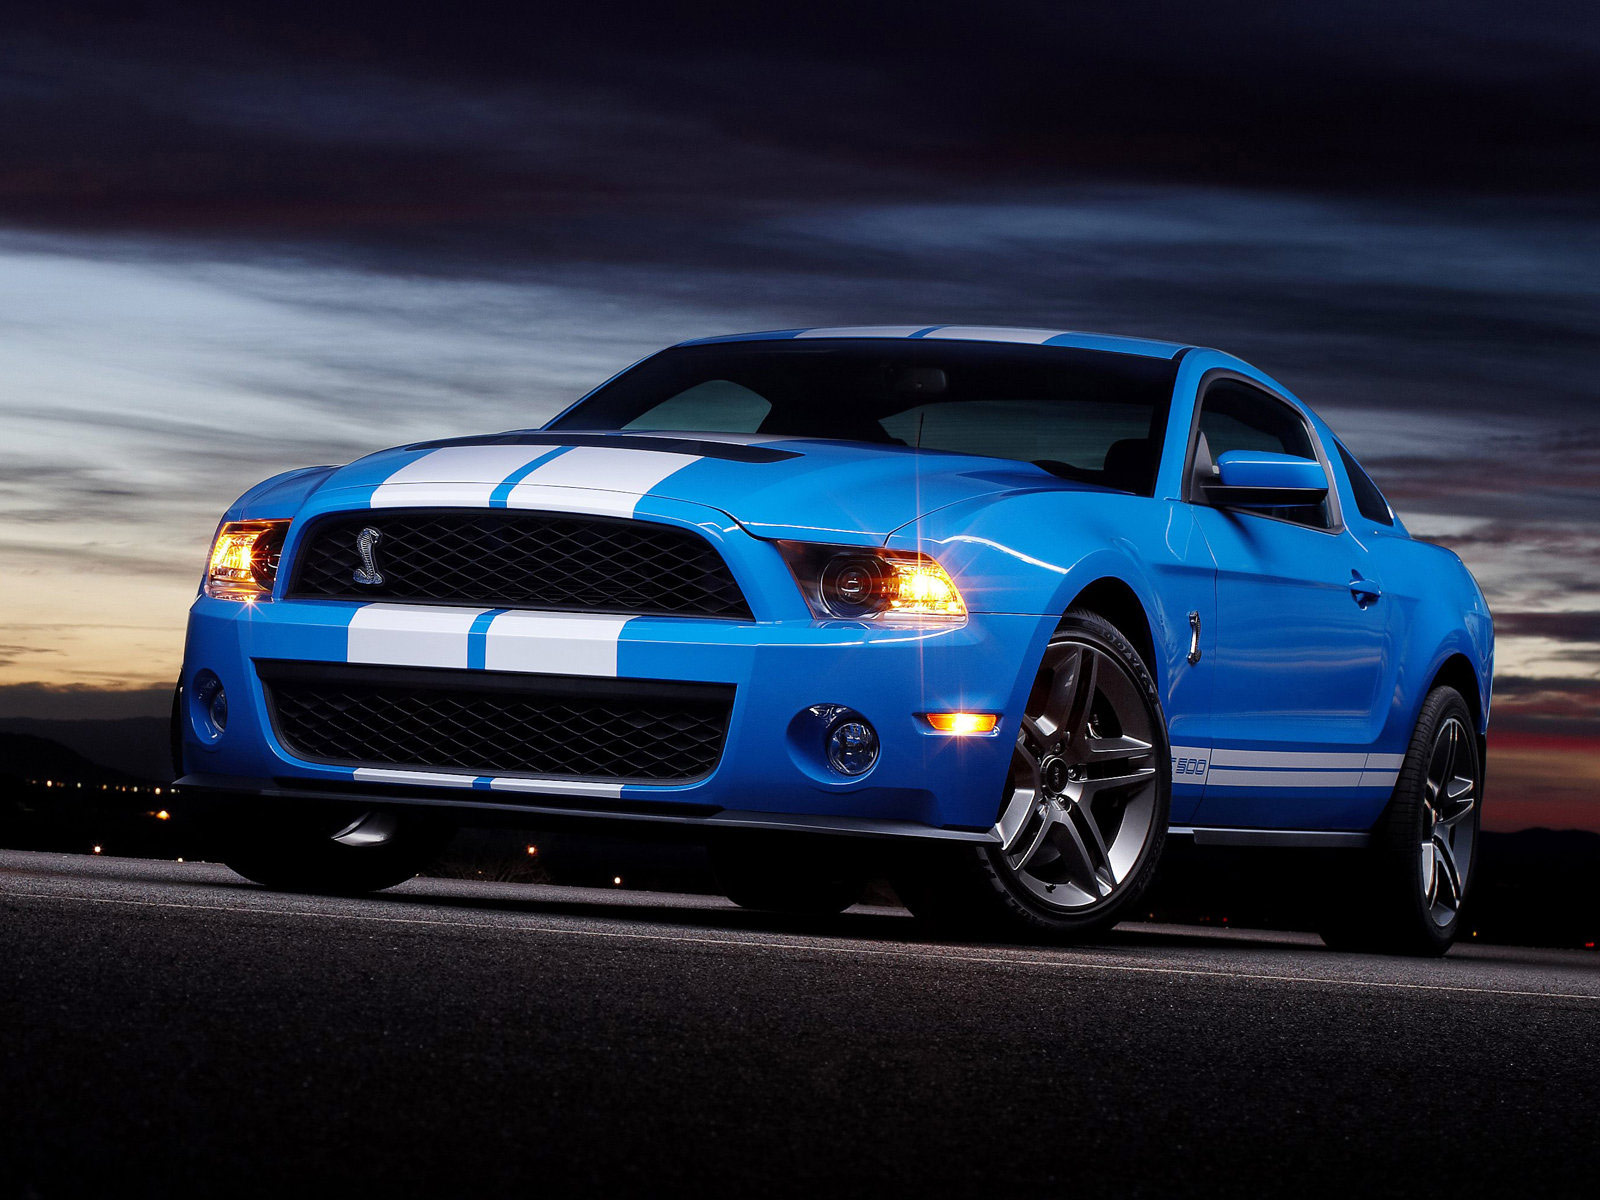 2010 ford mustang shelby gt500 the new 2010 ford mustang shelby gt500 delivers